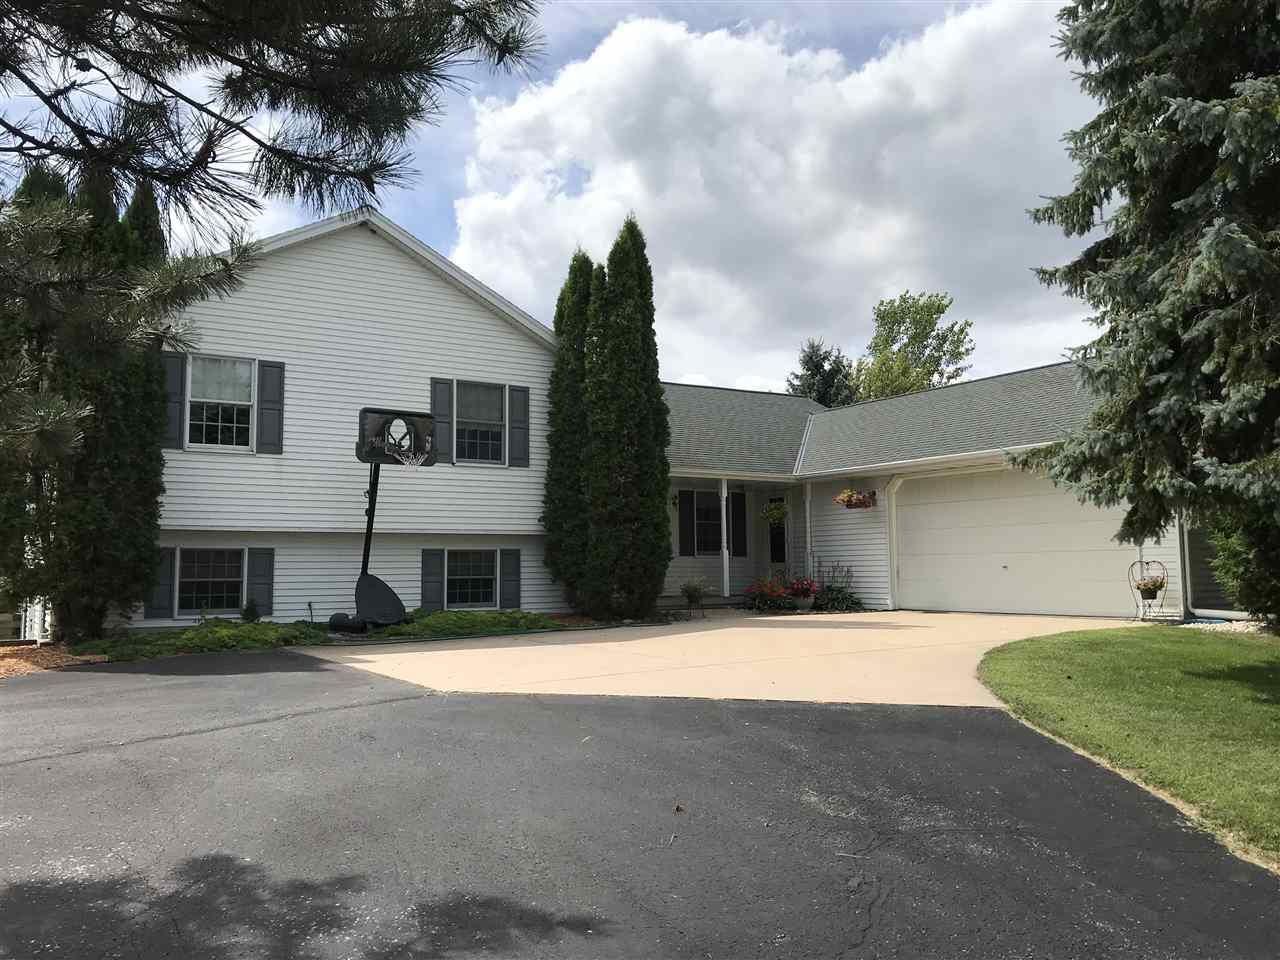 Need space! Come see this 4 bdrm, 2.5 bath custom multi-level country home on 8 acres. Main flr features a beautiful grt rm w/brick FP and tongue & groove ceiling. Kitchen w/maple cabinets & hdwd floors. Relax in the 4-season rm w/tongue & groove ceiling and 3 sets of patio doors. 4 bdrms upstairs including master w/entrance to bath w/jet tub. In the lower lvl there is a spacious frm w/full walk-out to patio. You will also find a bedroom, office & full bath w/laundry. Basement w/garage entry. Want horses? This 8 acre property is ideal!